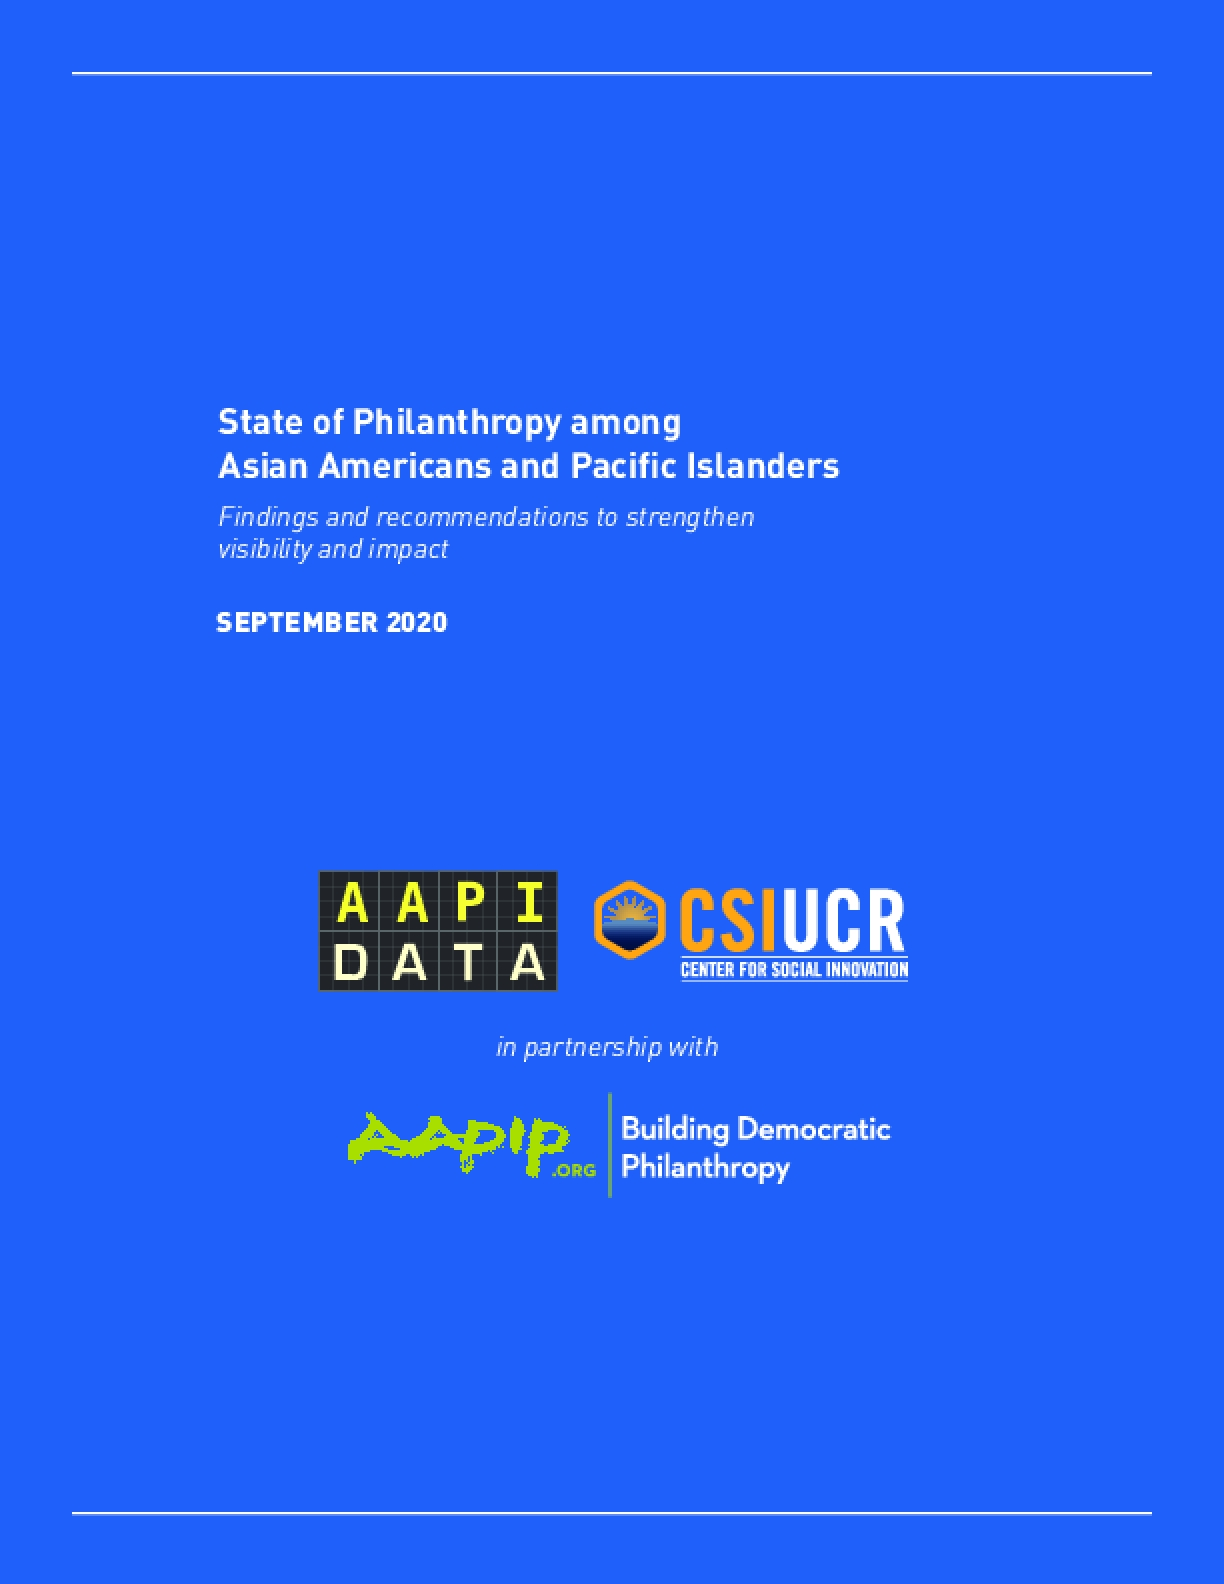 State of Philanthropy Among Asian Americans and Pacific Islanders: Findings and Recommendations to Strengthen Visibility and Impact